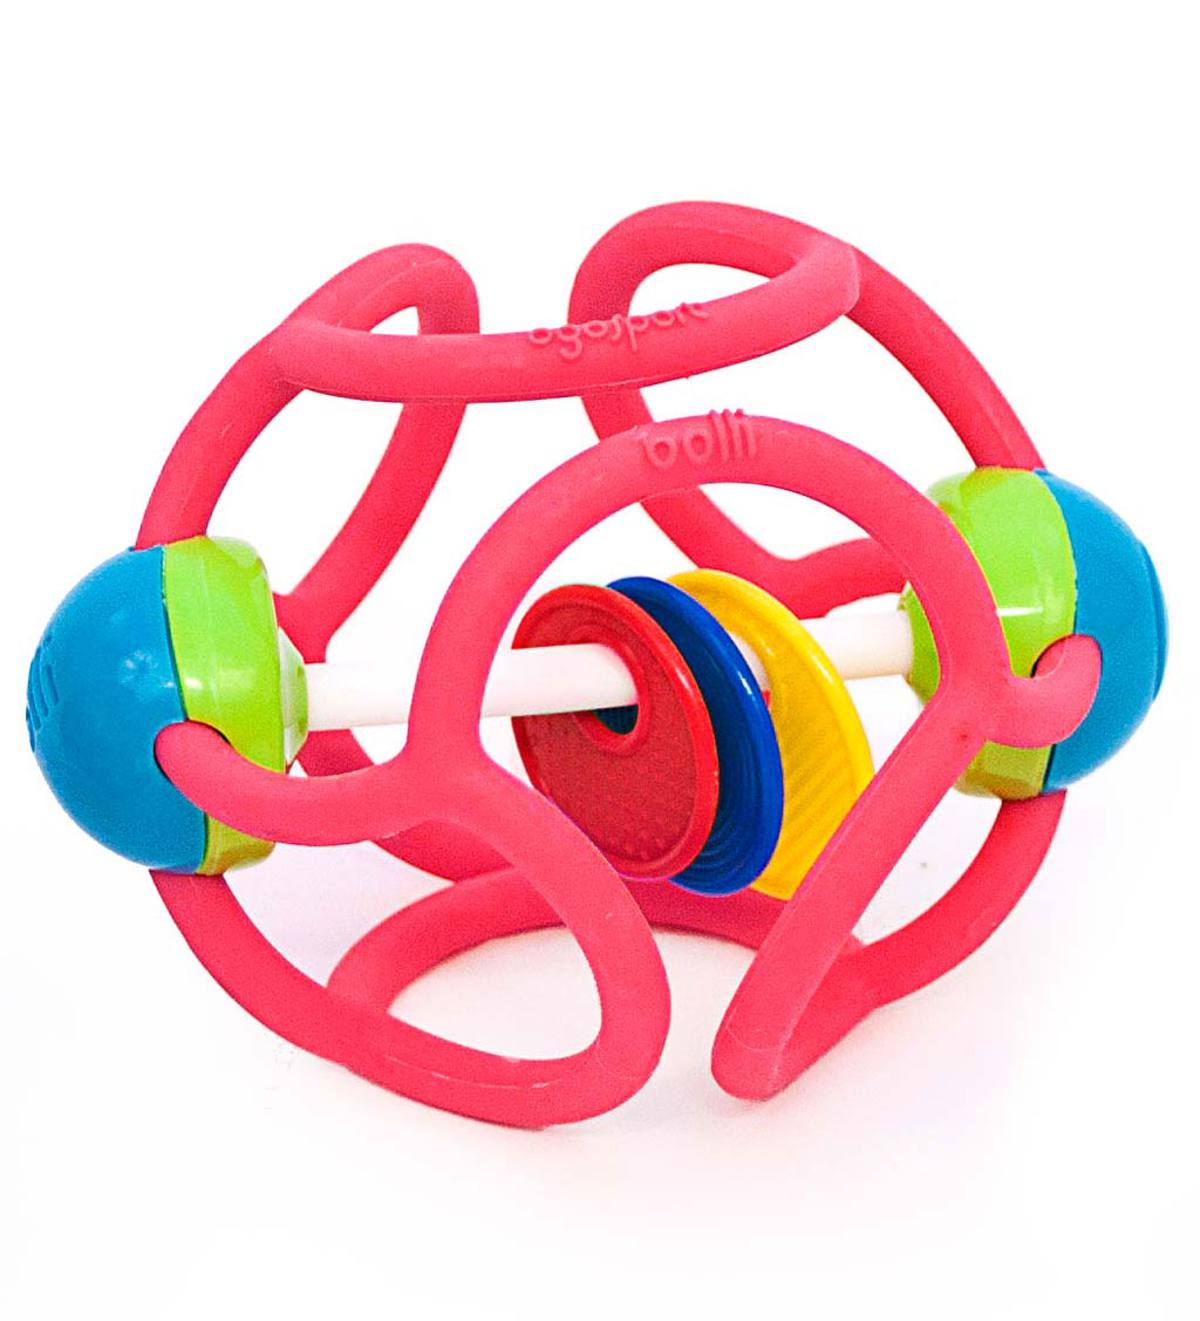 Bollie Squishy Rattle Ball - Pink